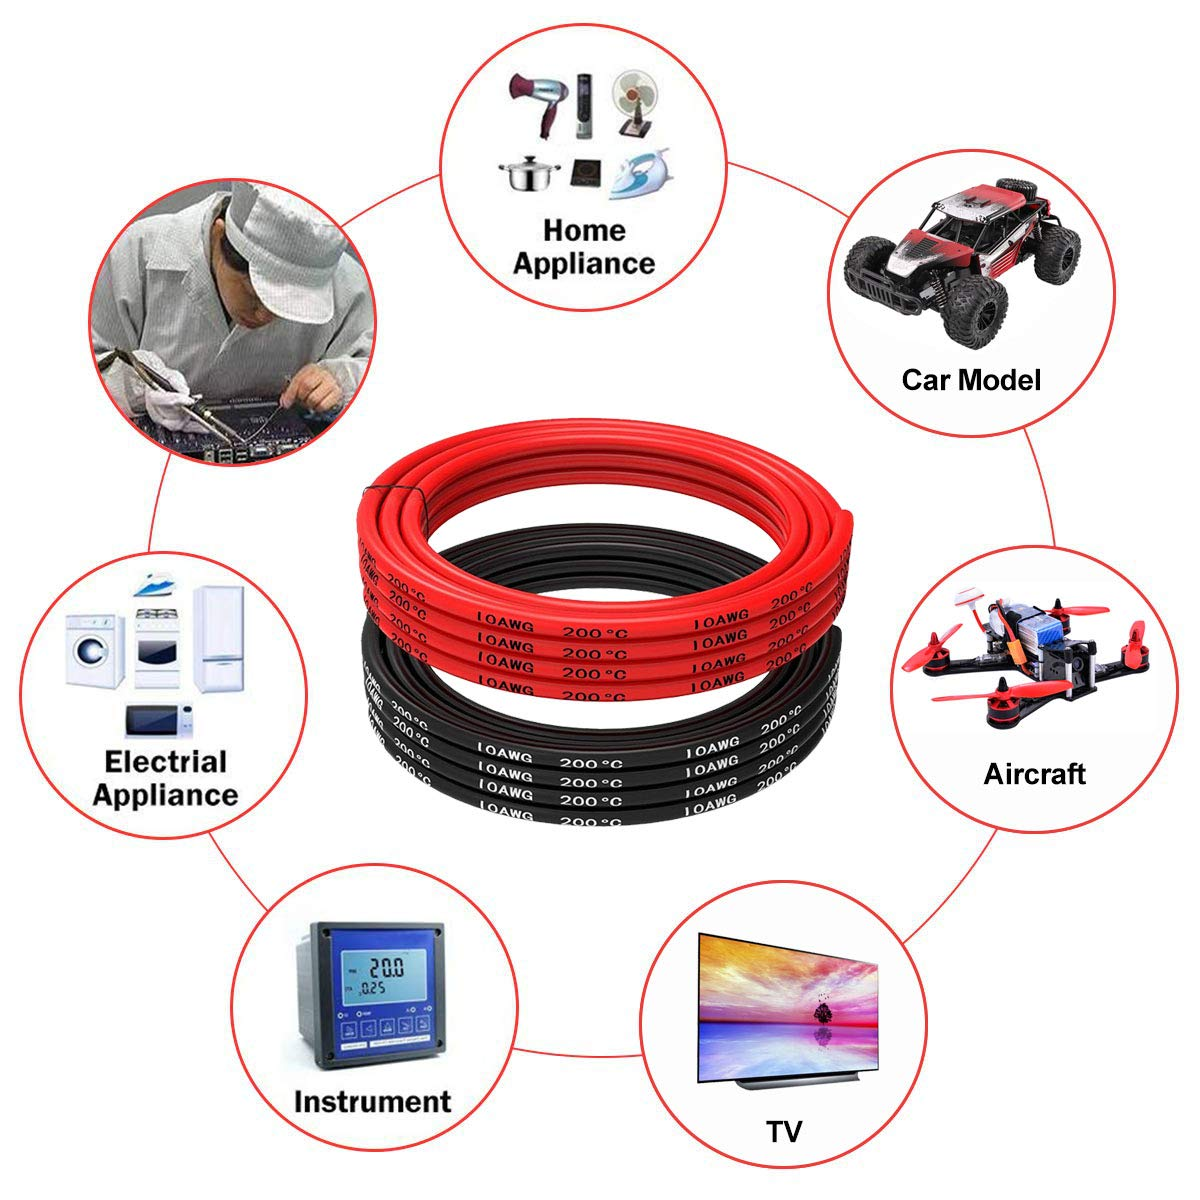 10 Gauge Silicone Wire 10AWG 16.4ft Drone Soft and Flexible,Super Low Impedance,10 AWG Silicone Wire 1050 Strands of 0.08 mm Copper Wire for RC Car 8.2ft// Black and 8.2ft Red Airplane Battery etc